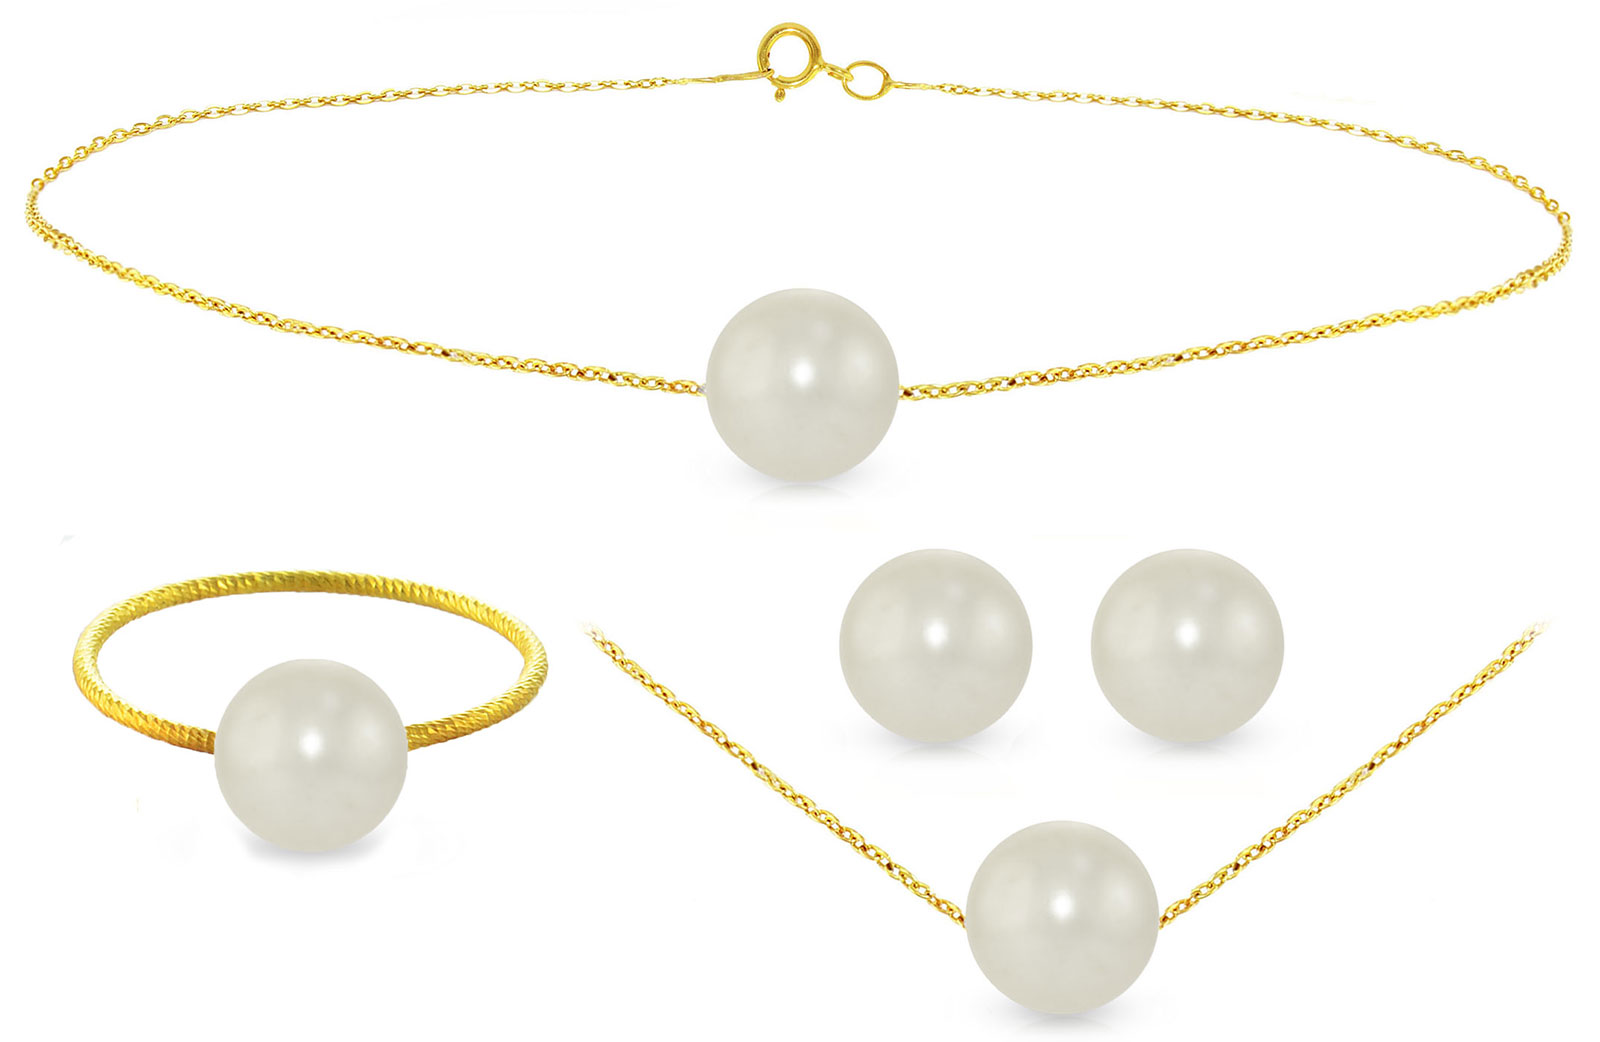 Vera Perla 10k Gold, 7mm White Pearls Necklace, Bracelet, Ring & Earrings